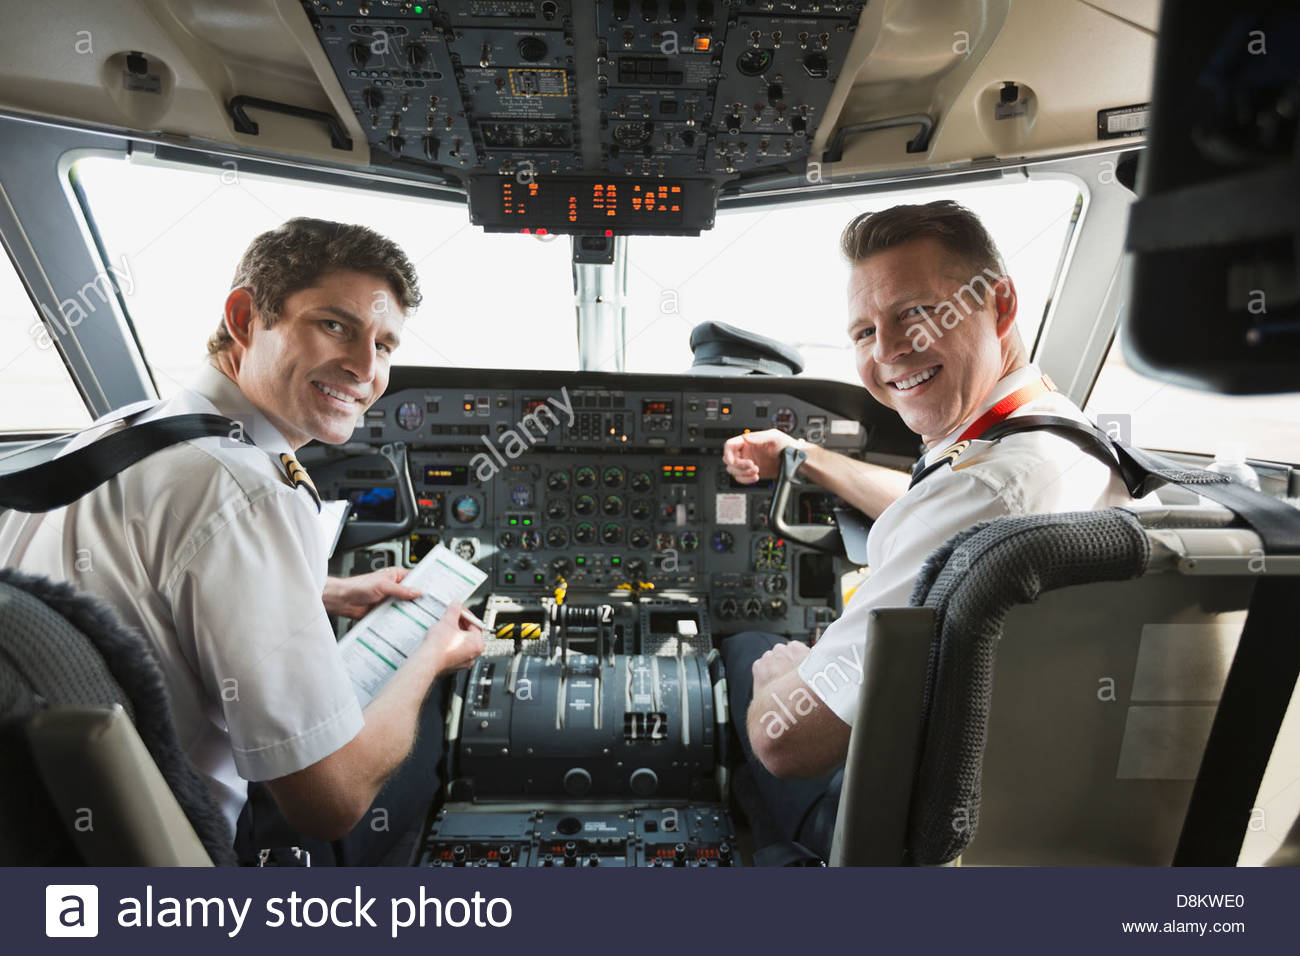 Portrait of male pilot and co-pilot in airplane cockpit - Stock Image